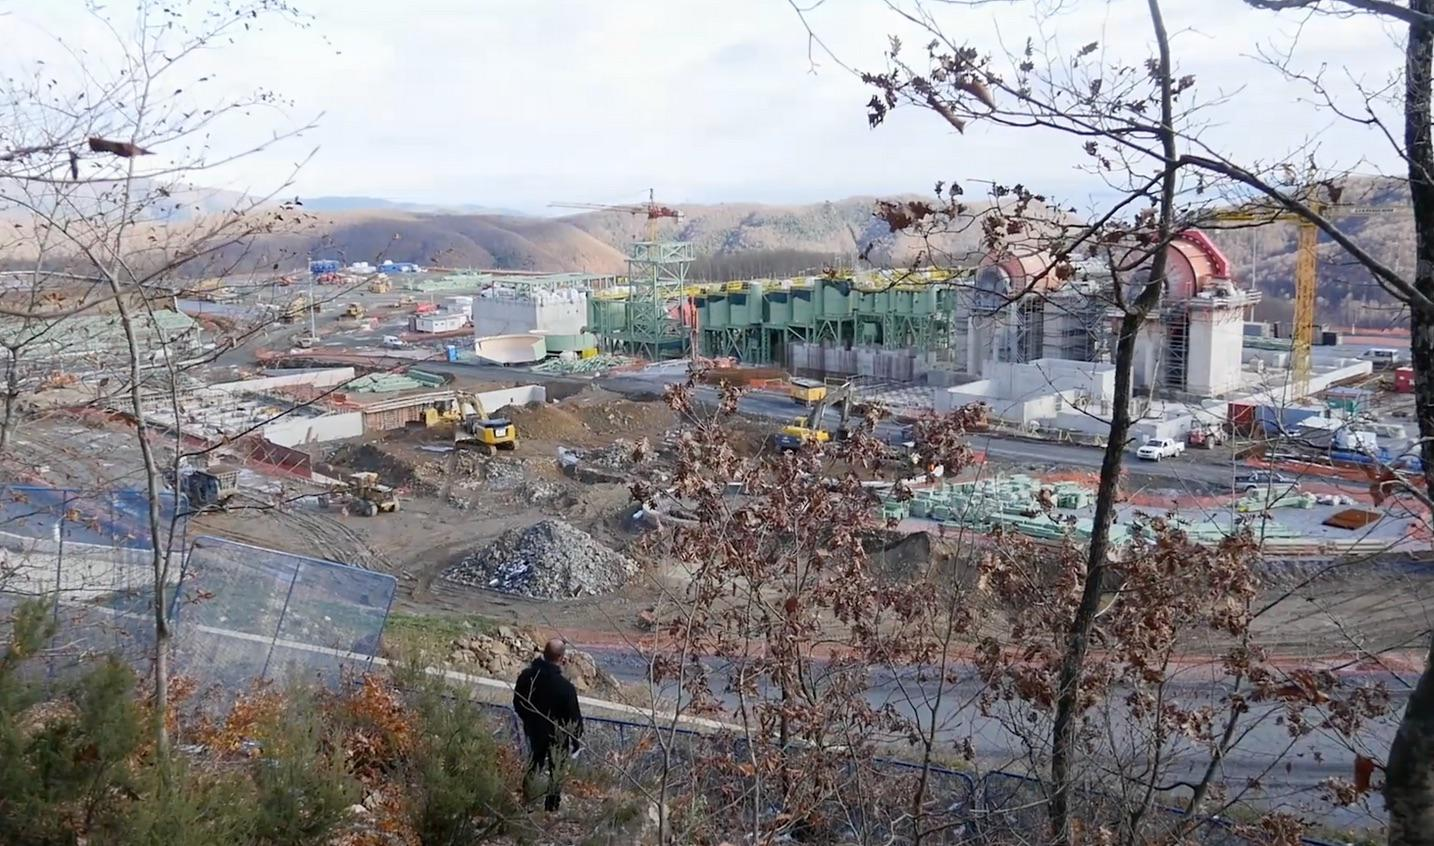 Construction at Skouries